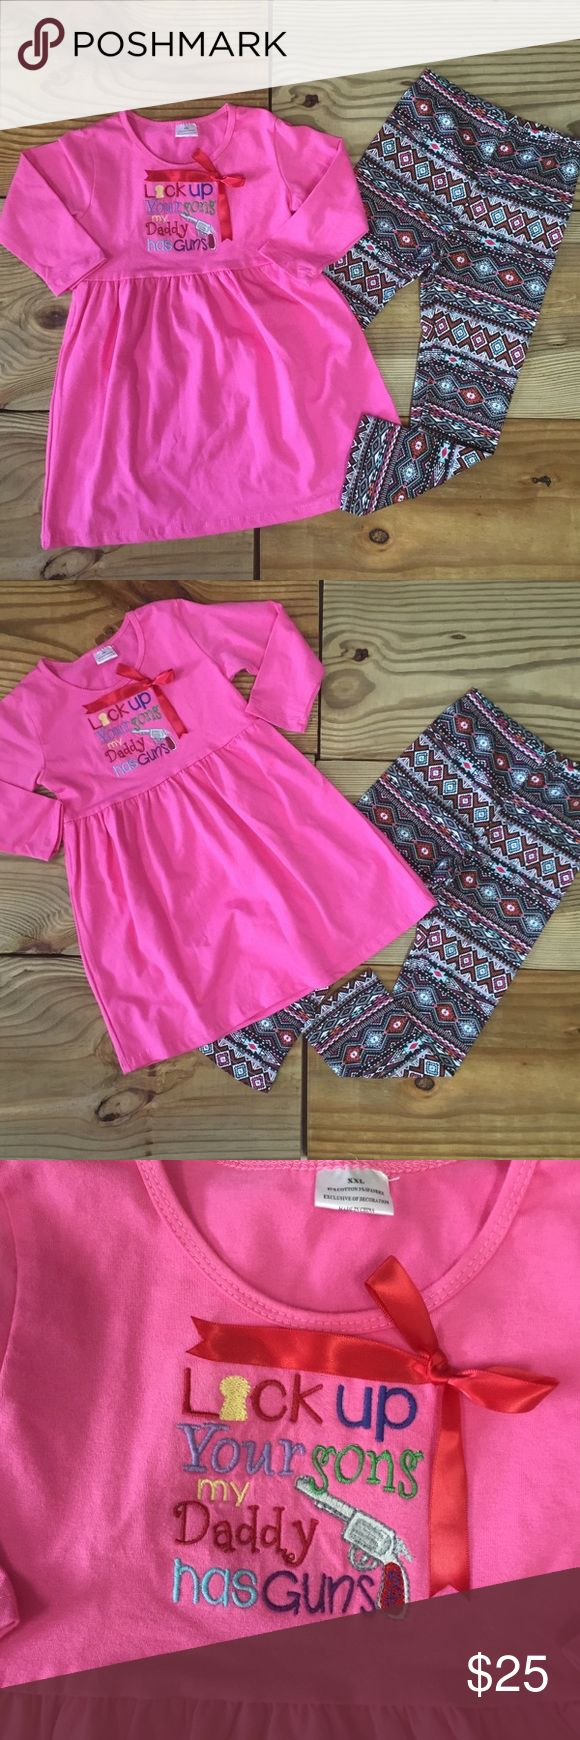 """Lock Up Your Sons, My Daddy Has Guns"" Outfit Our little girls hot pink aztec legging outfit is size XXL 6-7 Years. The embroidered appliqué is adorable ""Lock Up Your Sons, My Daddy Has Guns"". Perfect for ""Back To School""! Wear the tunic top as a dress too! 97% Cotton 3% Spandex Soft and comfy! Great gift idea! Moxie Girl Matching Sets"